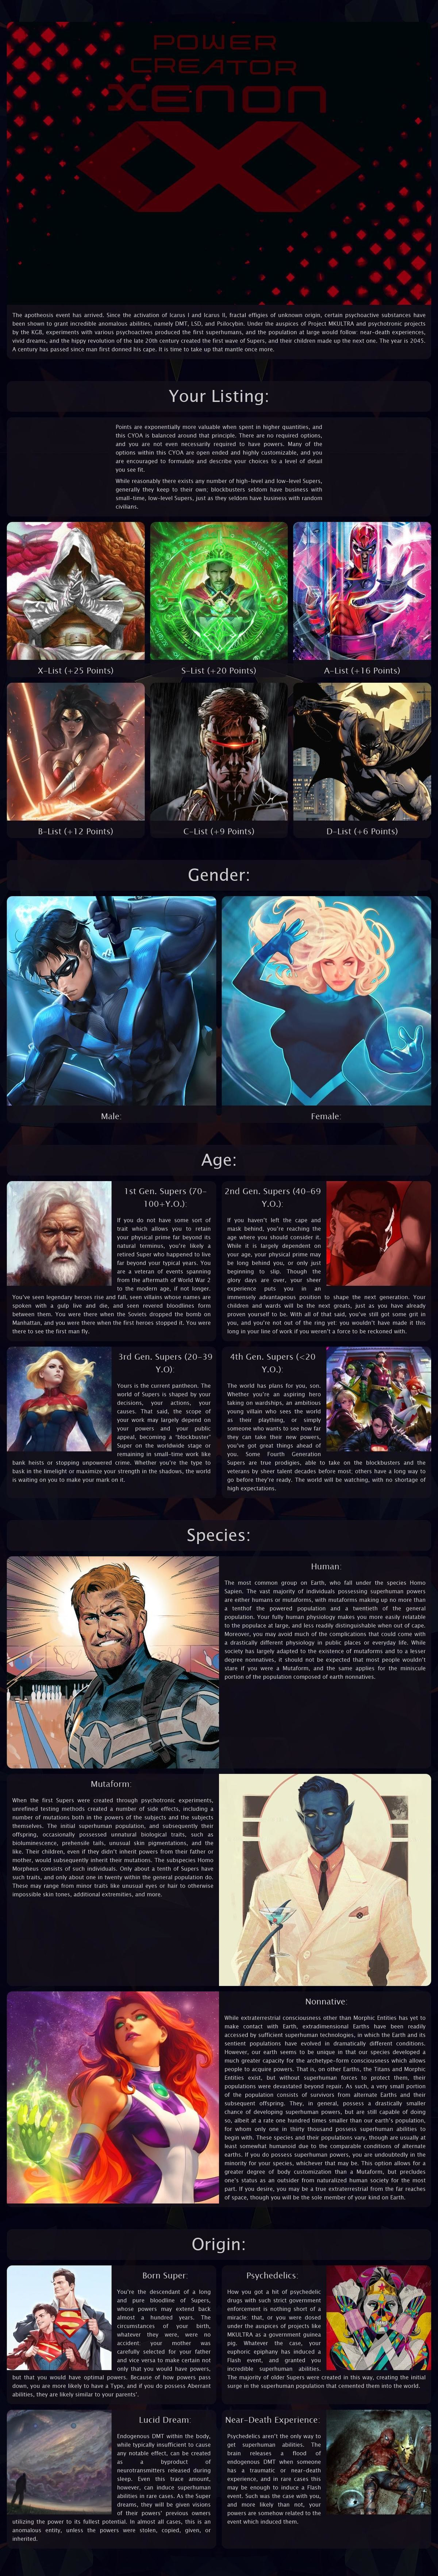 Power Creator Xenon CYOA. .. This is just too much for me, but it looks like it could be fun for others, if you created this, or know who did I would suggest that a lot of the information g